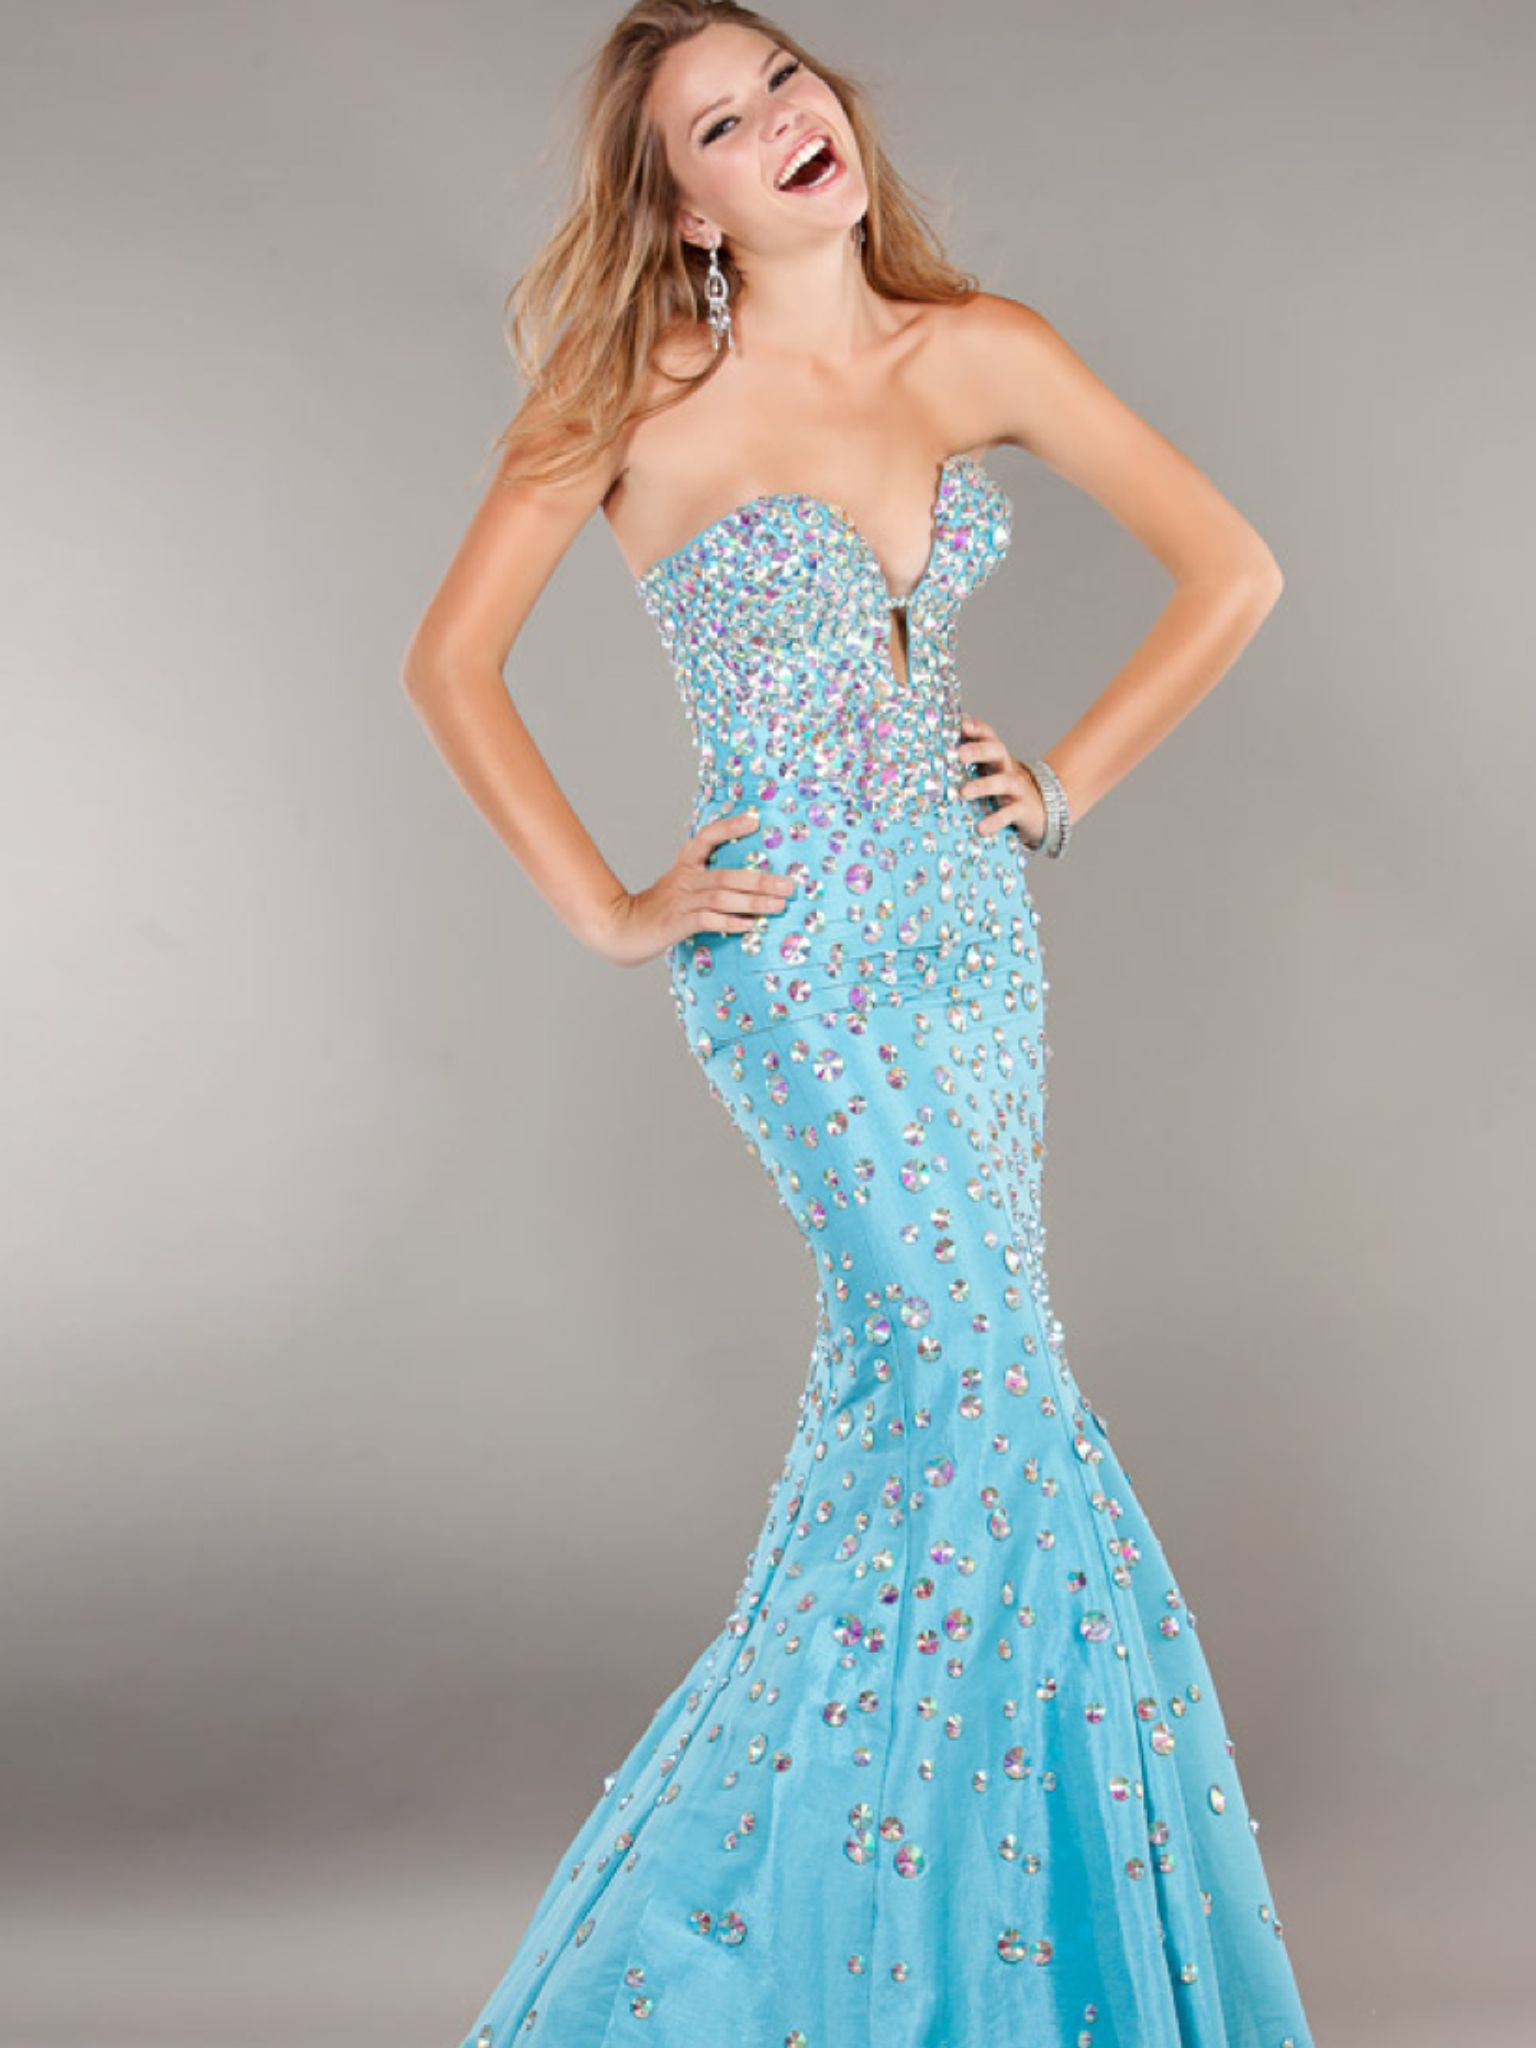 Mermaid style | Prom Dresses | Pinterest | Mermaid, Prom and Fall ...